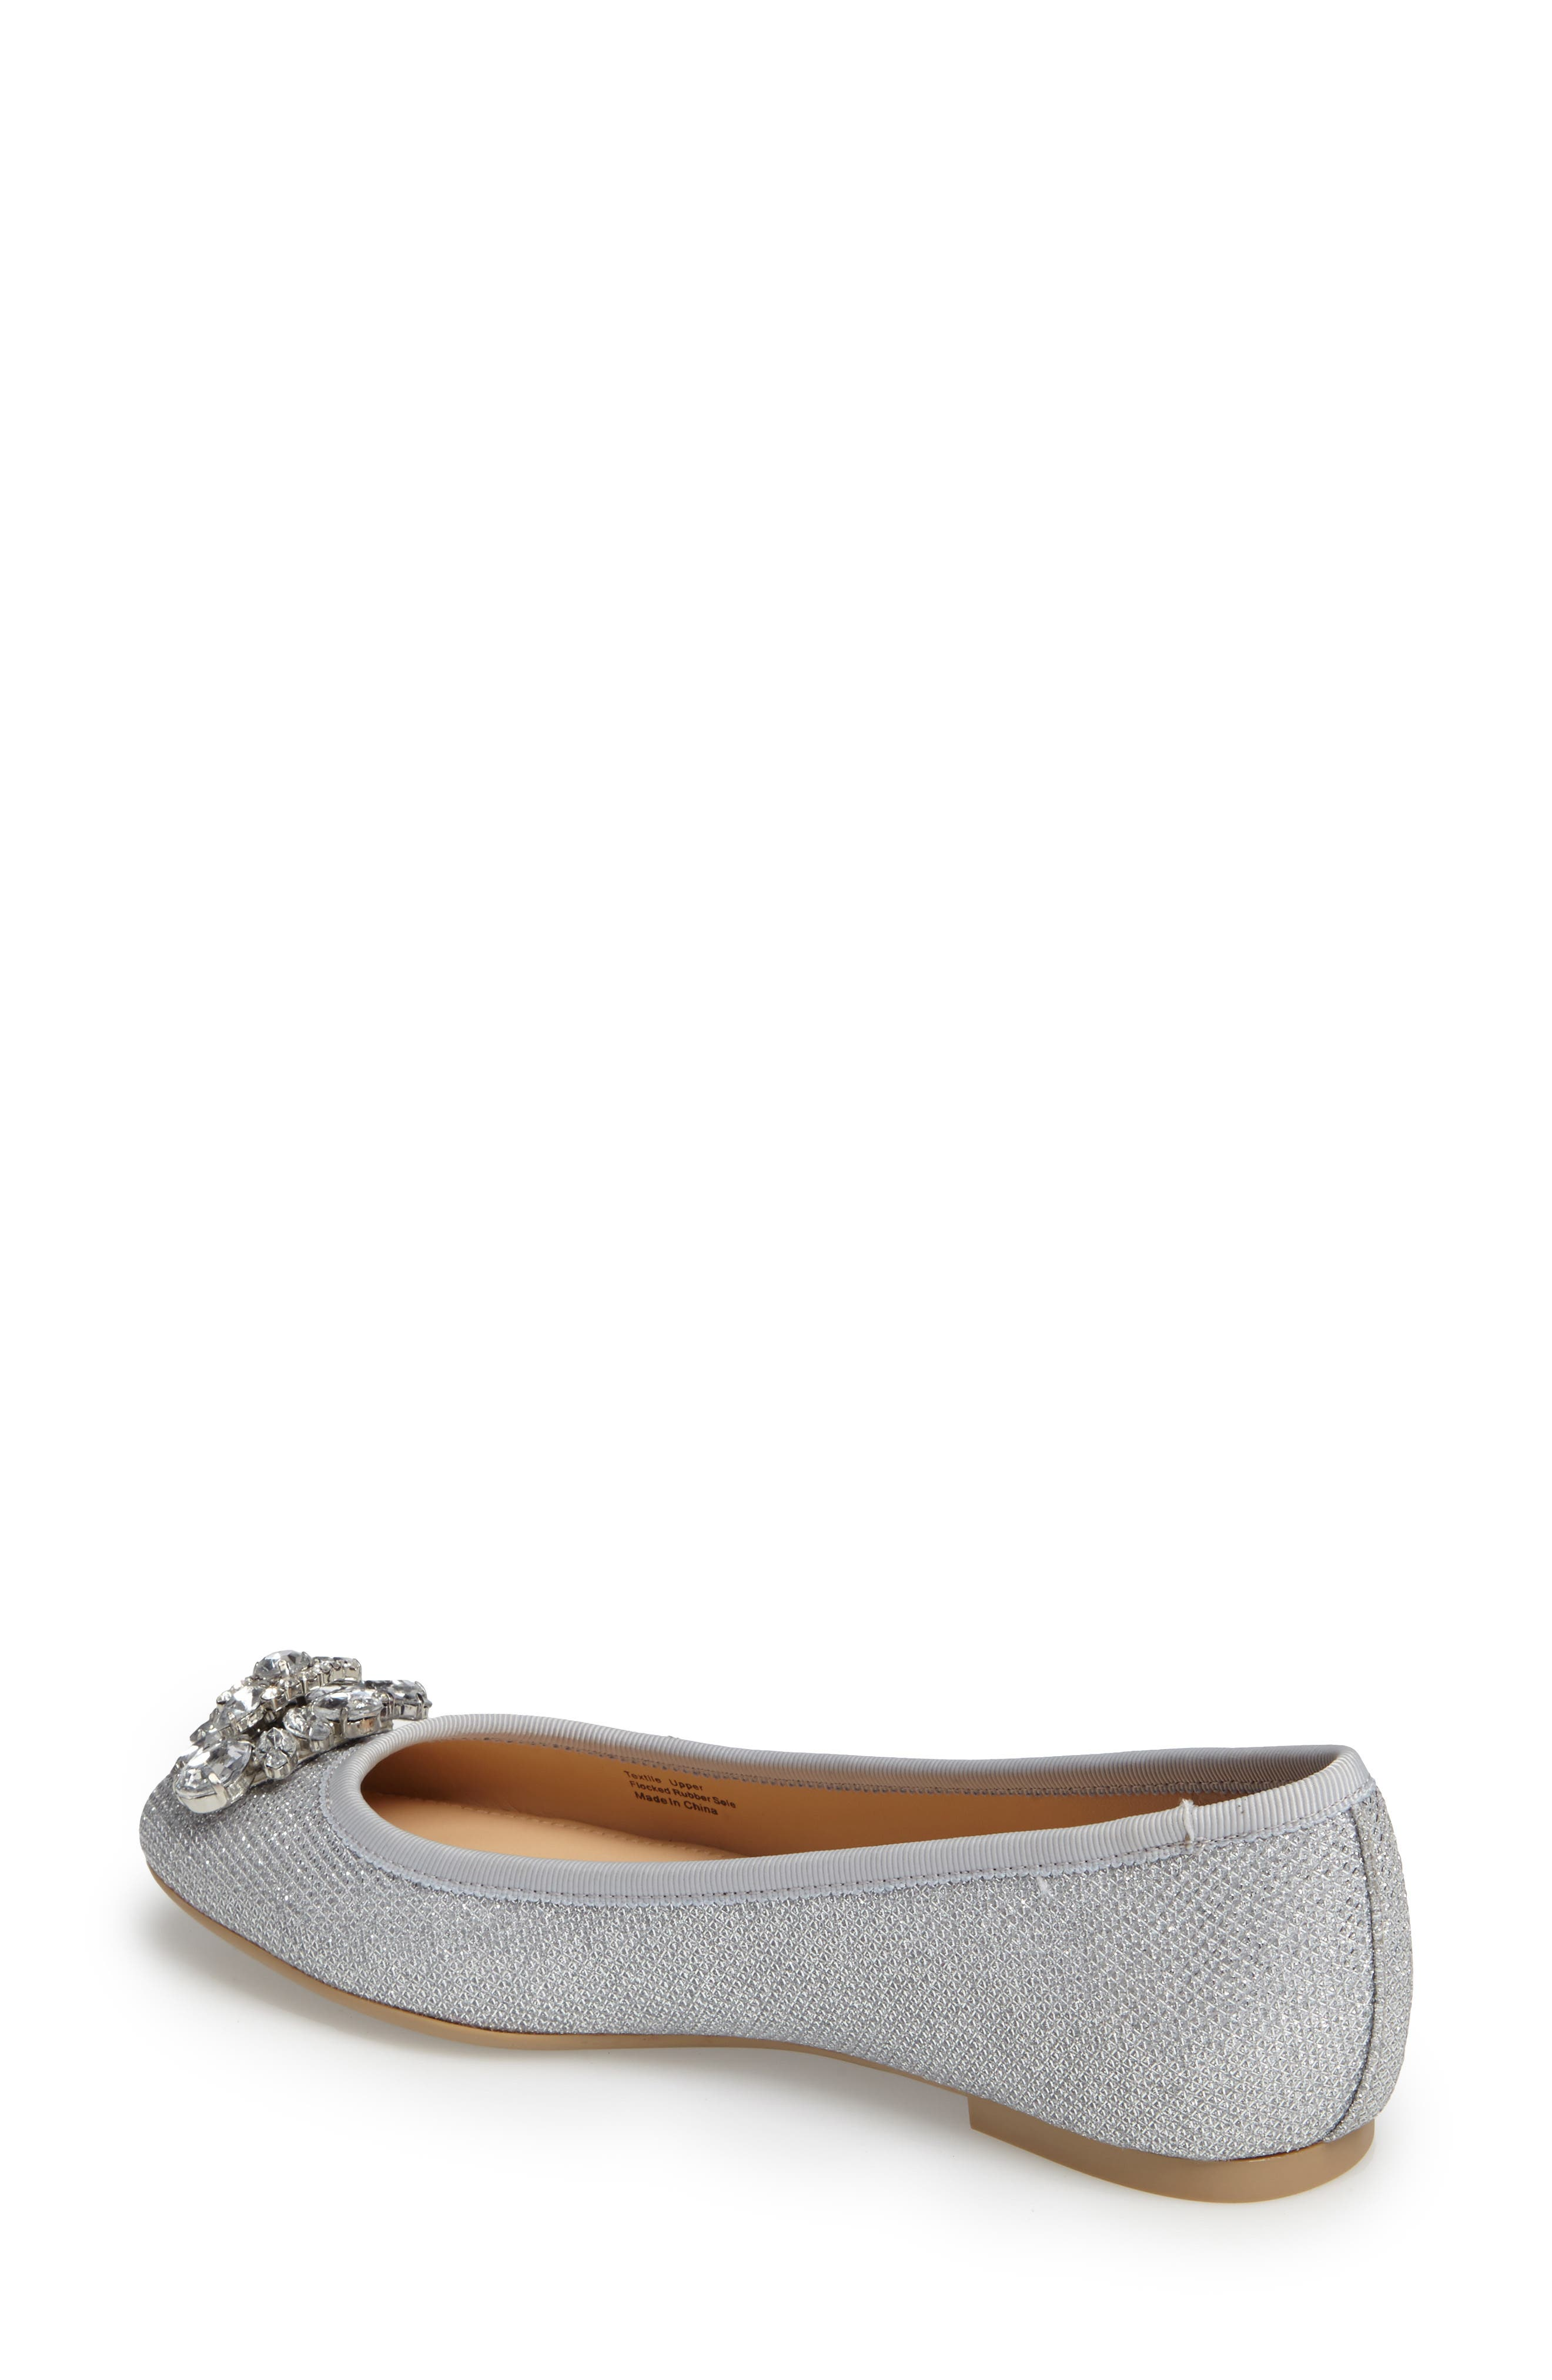 Cabella Embellished Ballet Flat,                             Alternate thumbnail 2, color,                             SILVER FABRIC